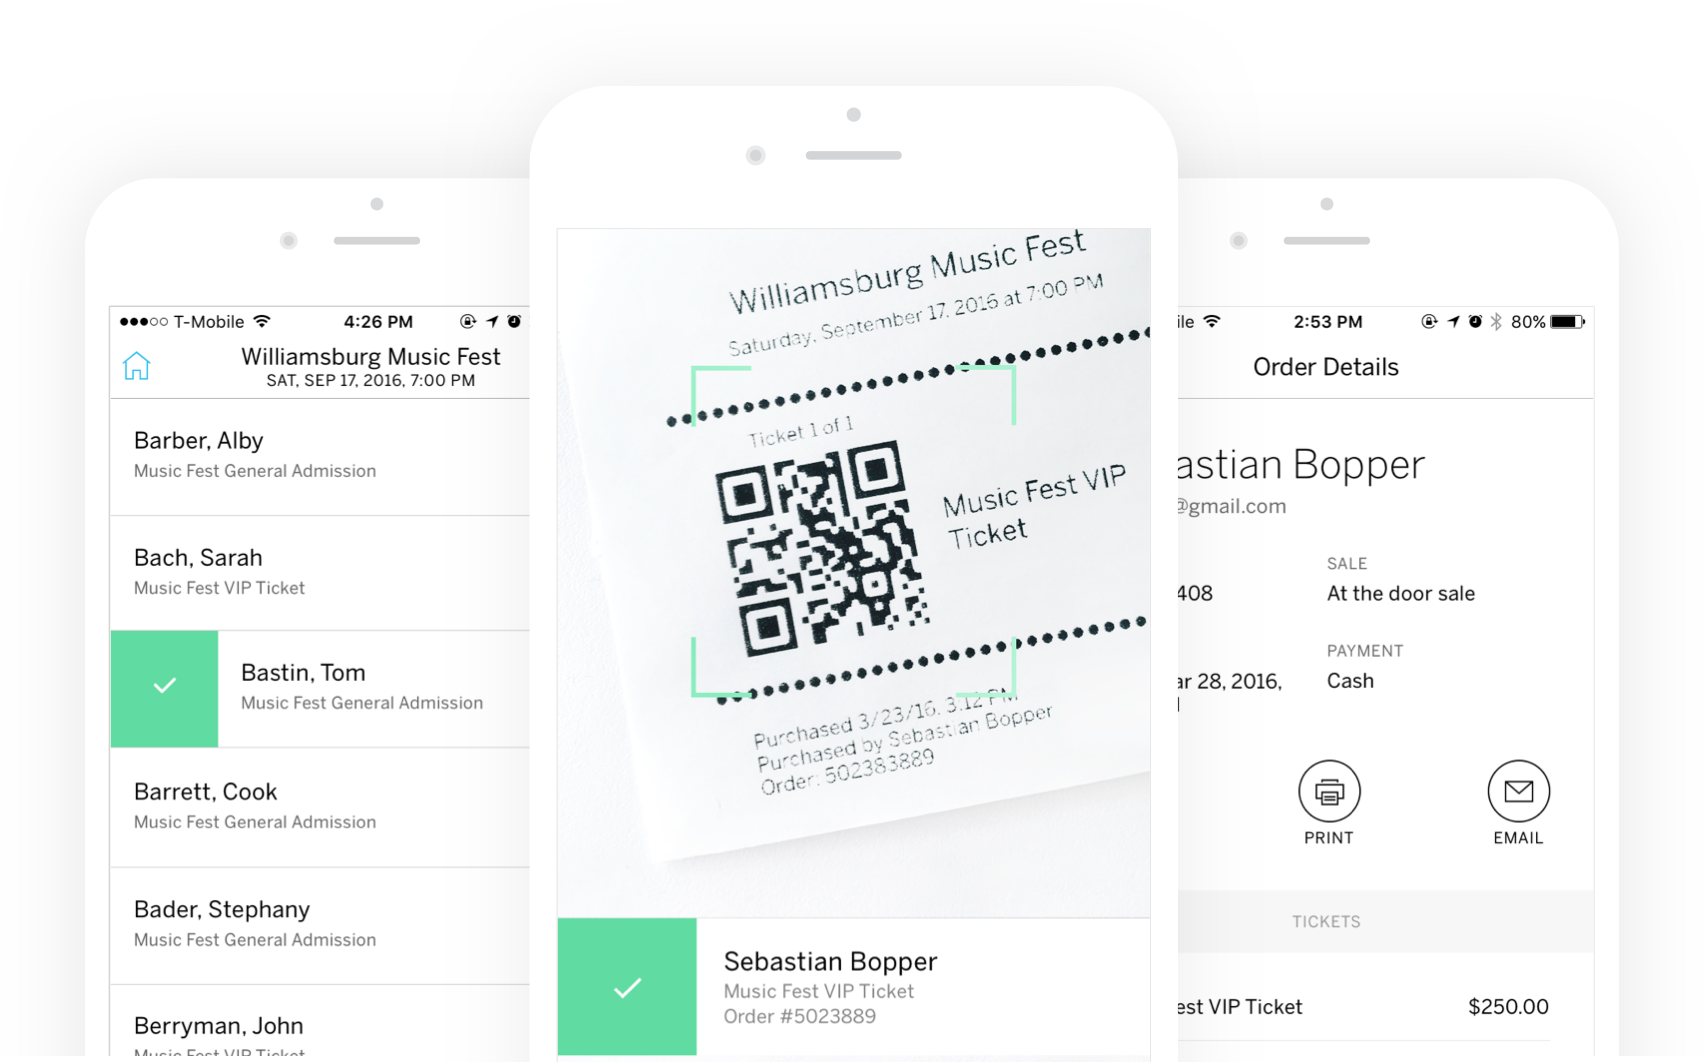 mockup of eventbrite ticketing features